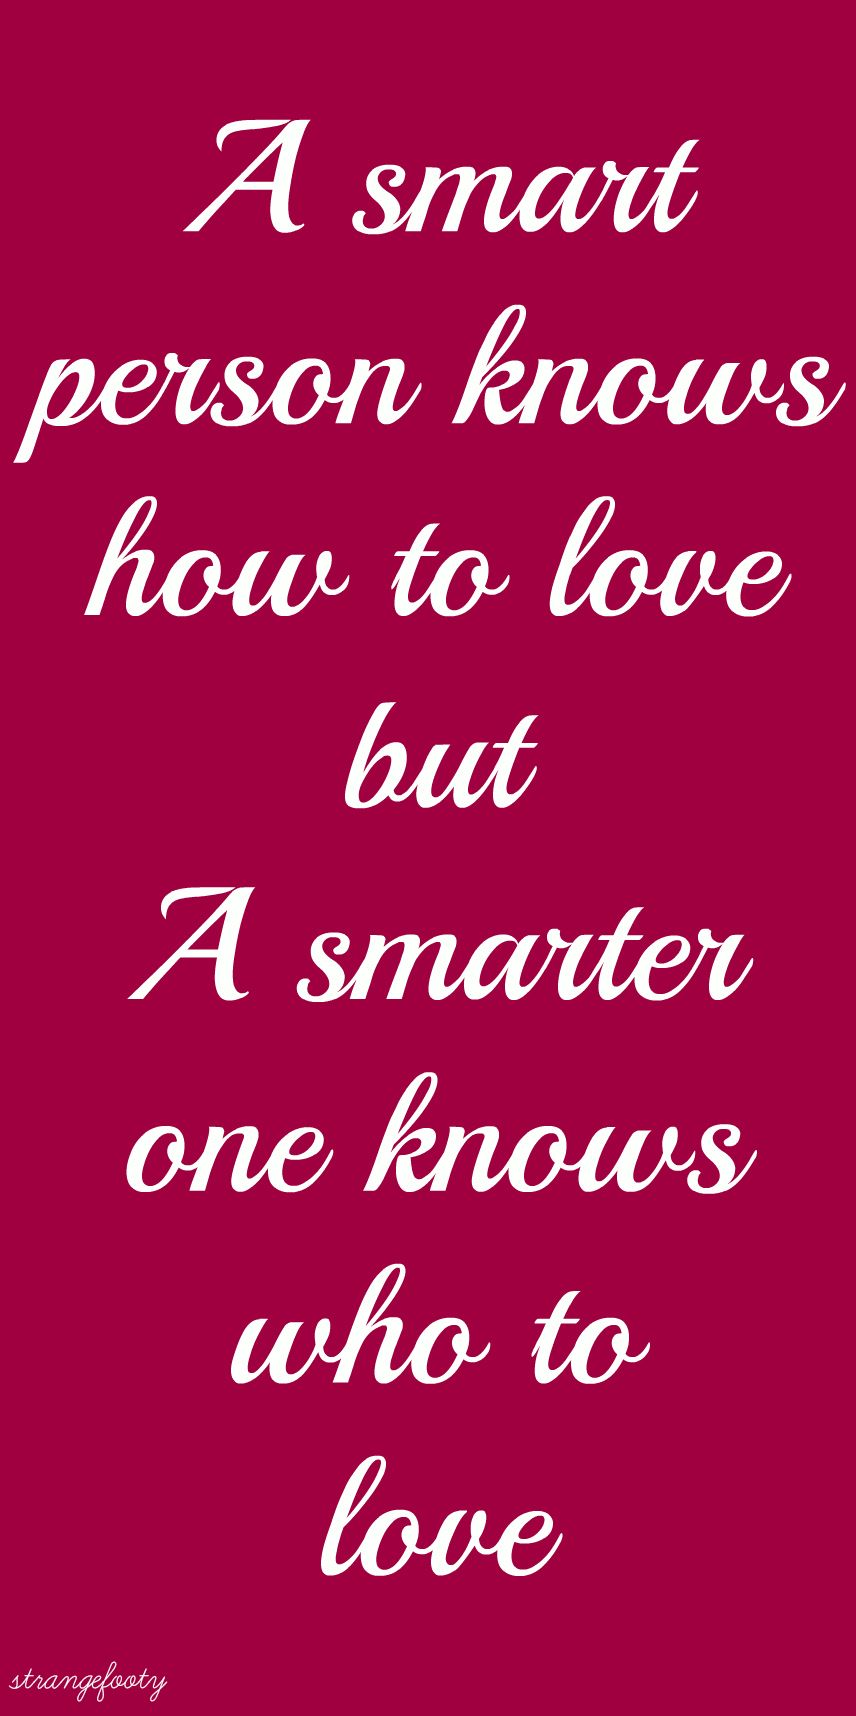 A smart person knows how to love but a smarter one knows who to love..